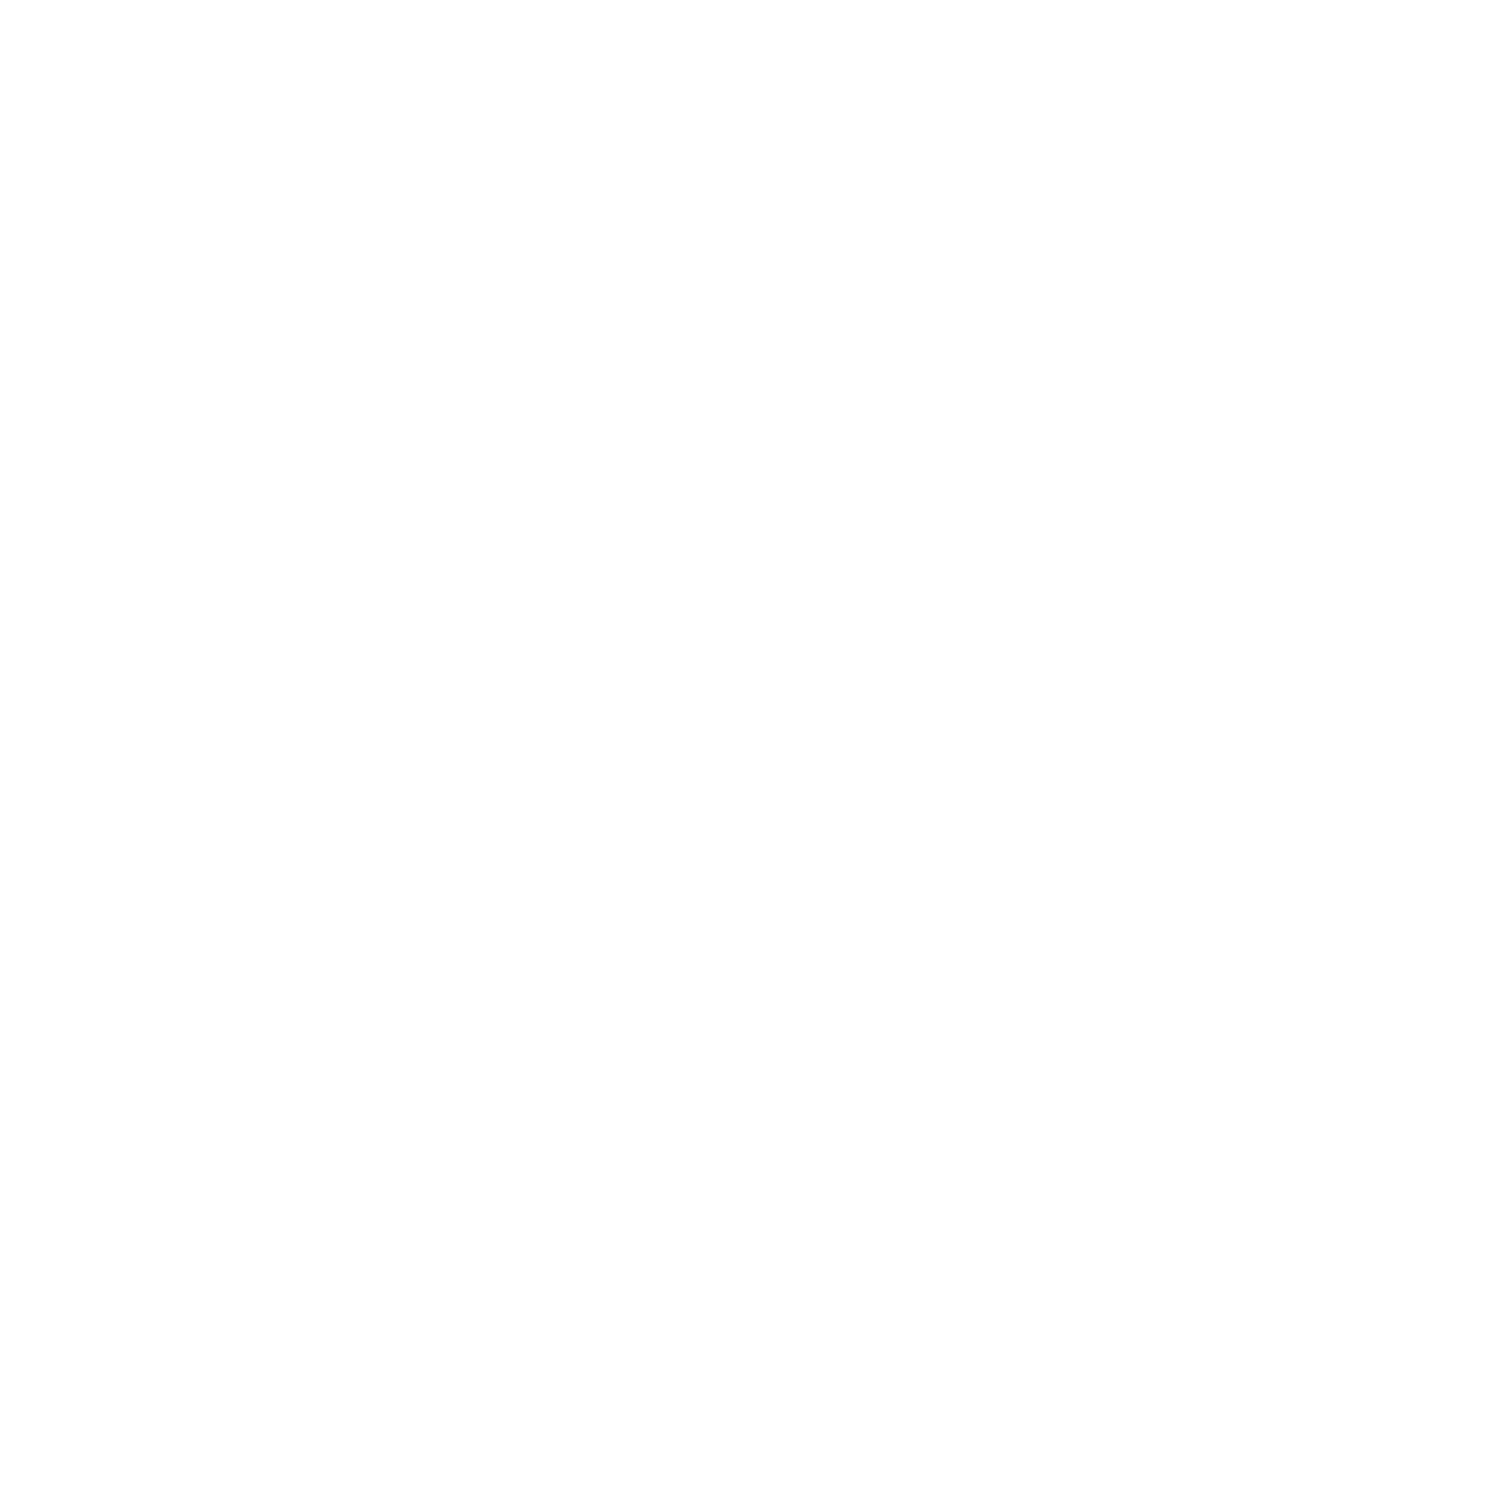 Gateway Christian church